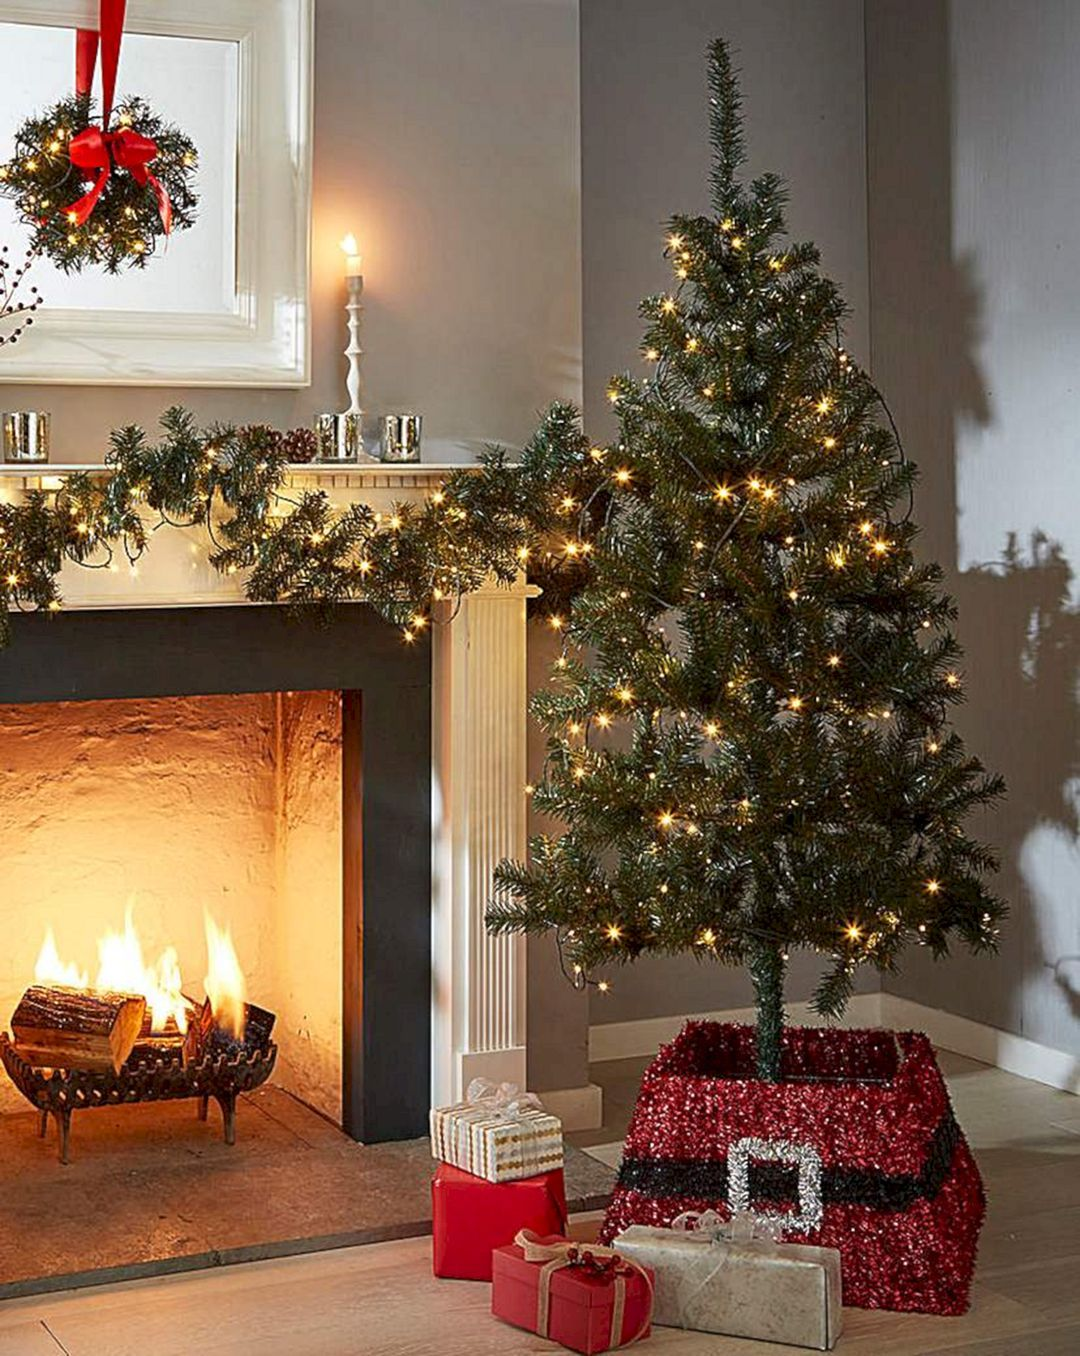 20+ Marvelous Indoor Christmas Decorations Ideas That Make